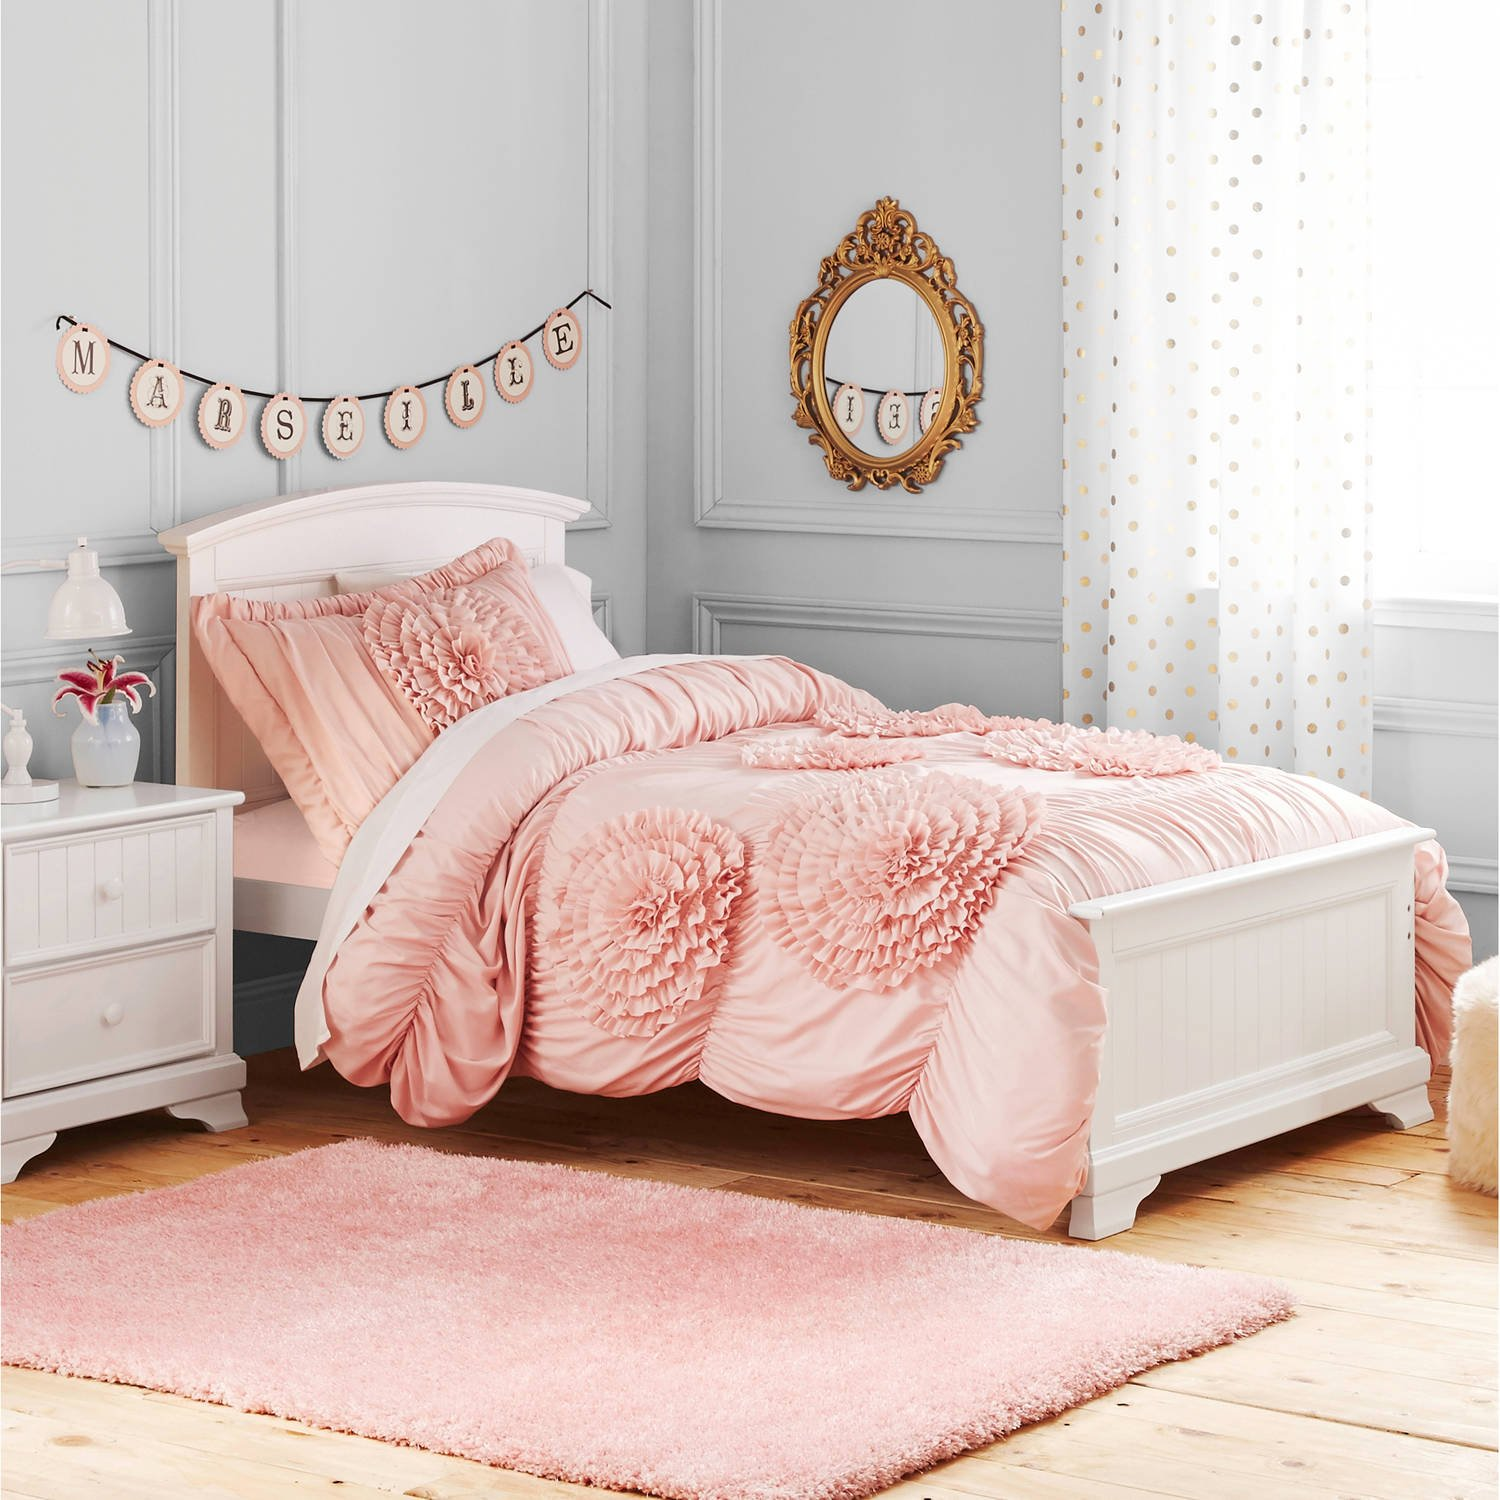 3 Piece Kids Blush Pink Luxury Ruffle Floral Pattern Comforter Full Queen Set, Handcrafted Ruffled Light Pink Flowers Bedding Ruched Texture Design, Boho Chic Hippie Indie Bohemian Style, Polyester